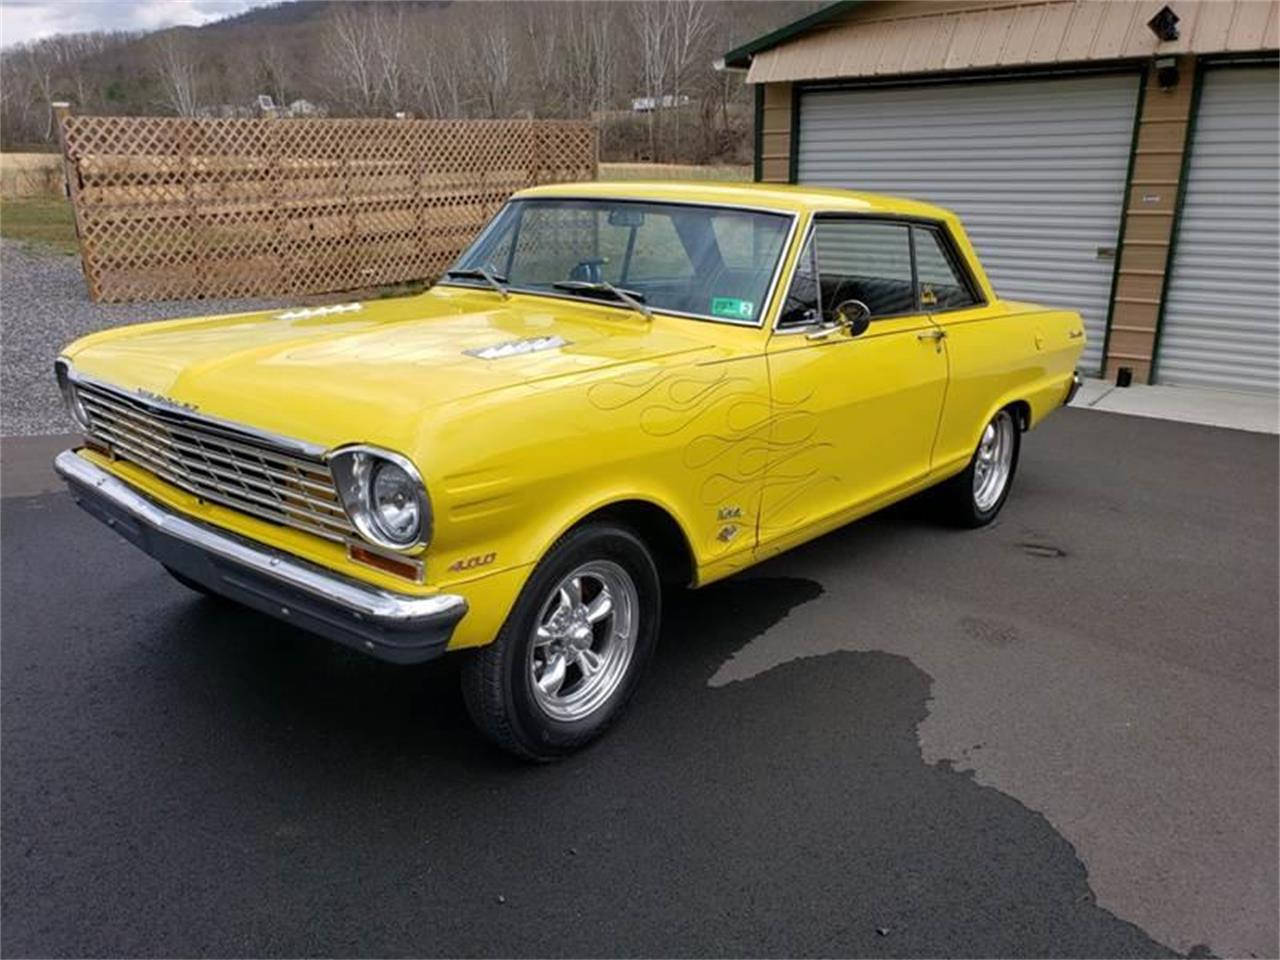 1963 Chevrolet Nova SS (CC-1208227) for sale in Clarksburg, Maryland